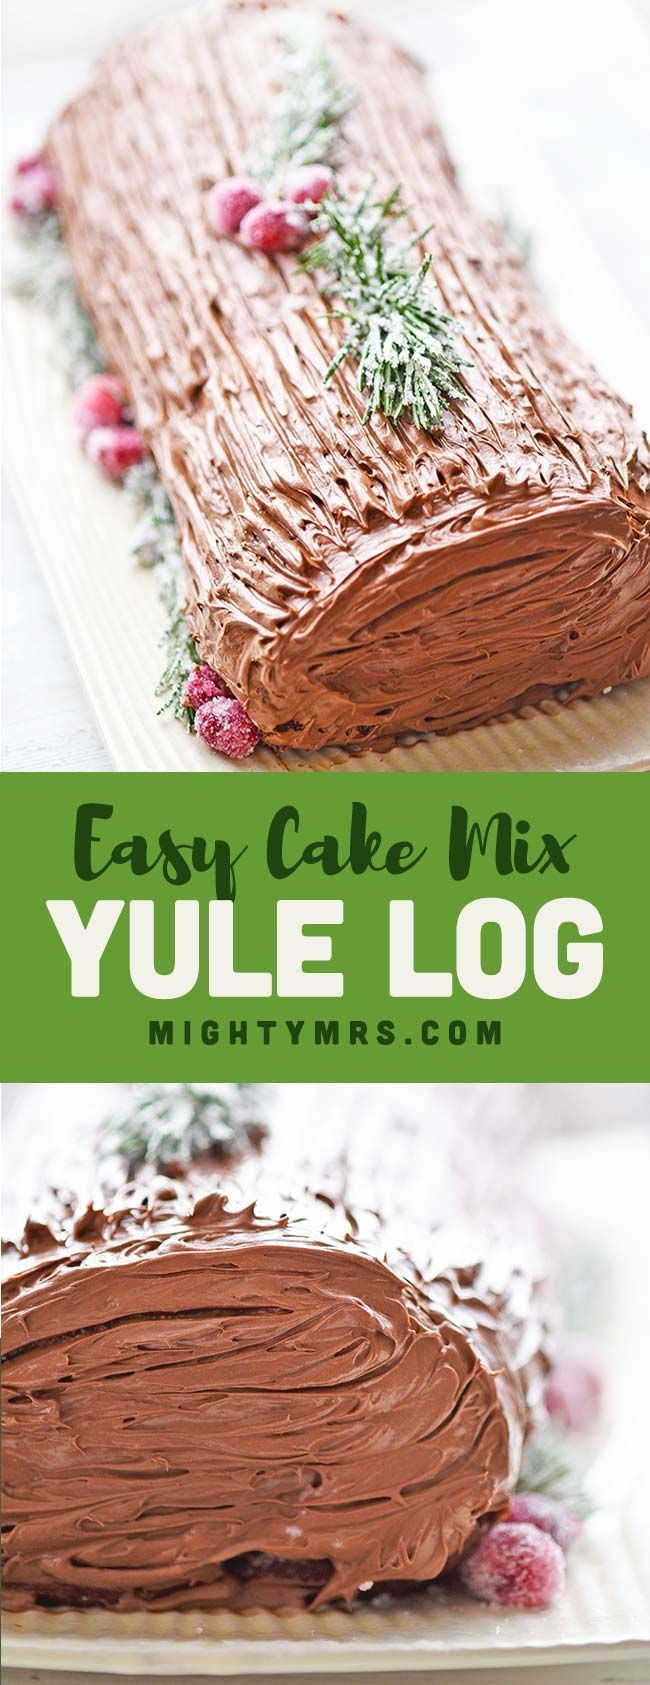 Easy Yule Log Recipe Using Cake Mix | Mighty Mrs